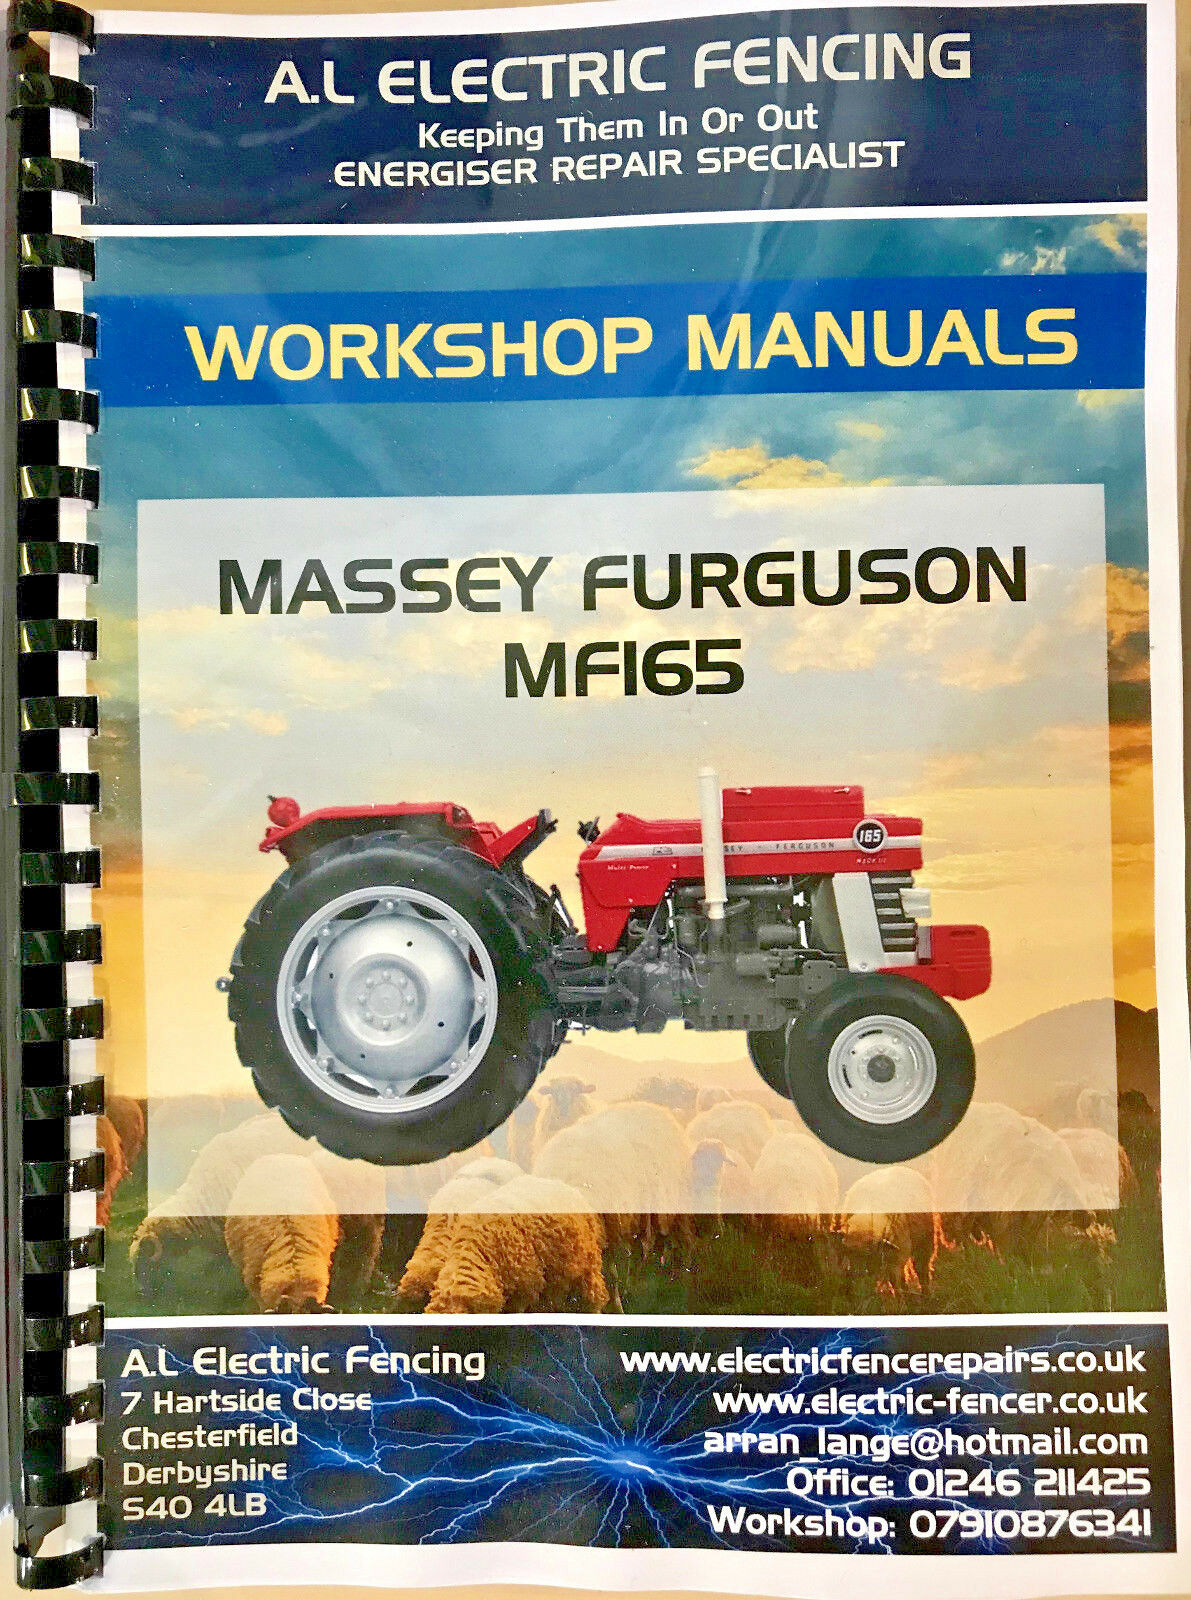 MF Massey Ferguson Tractor Workshop Manuals 4400 Series,Free Postage 1 of  1Only 1 available ...